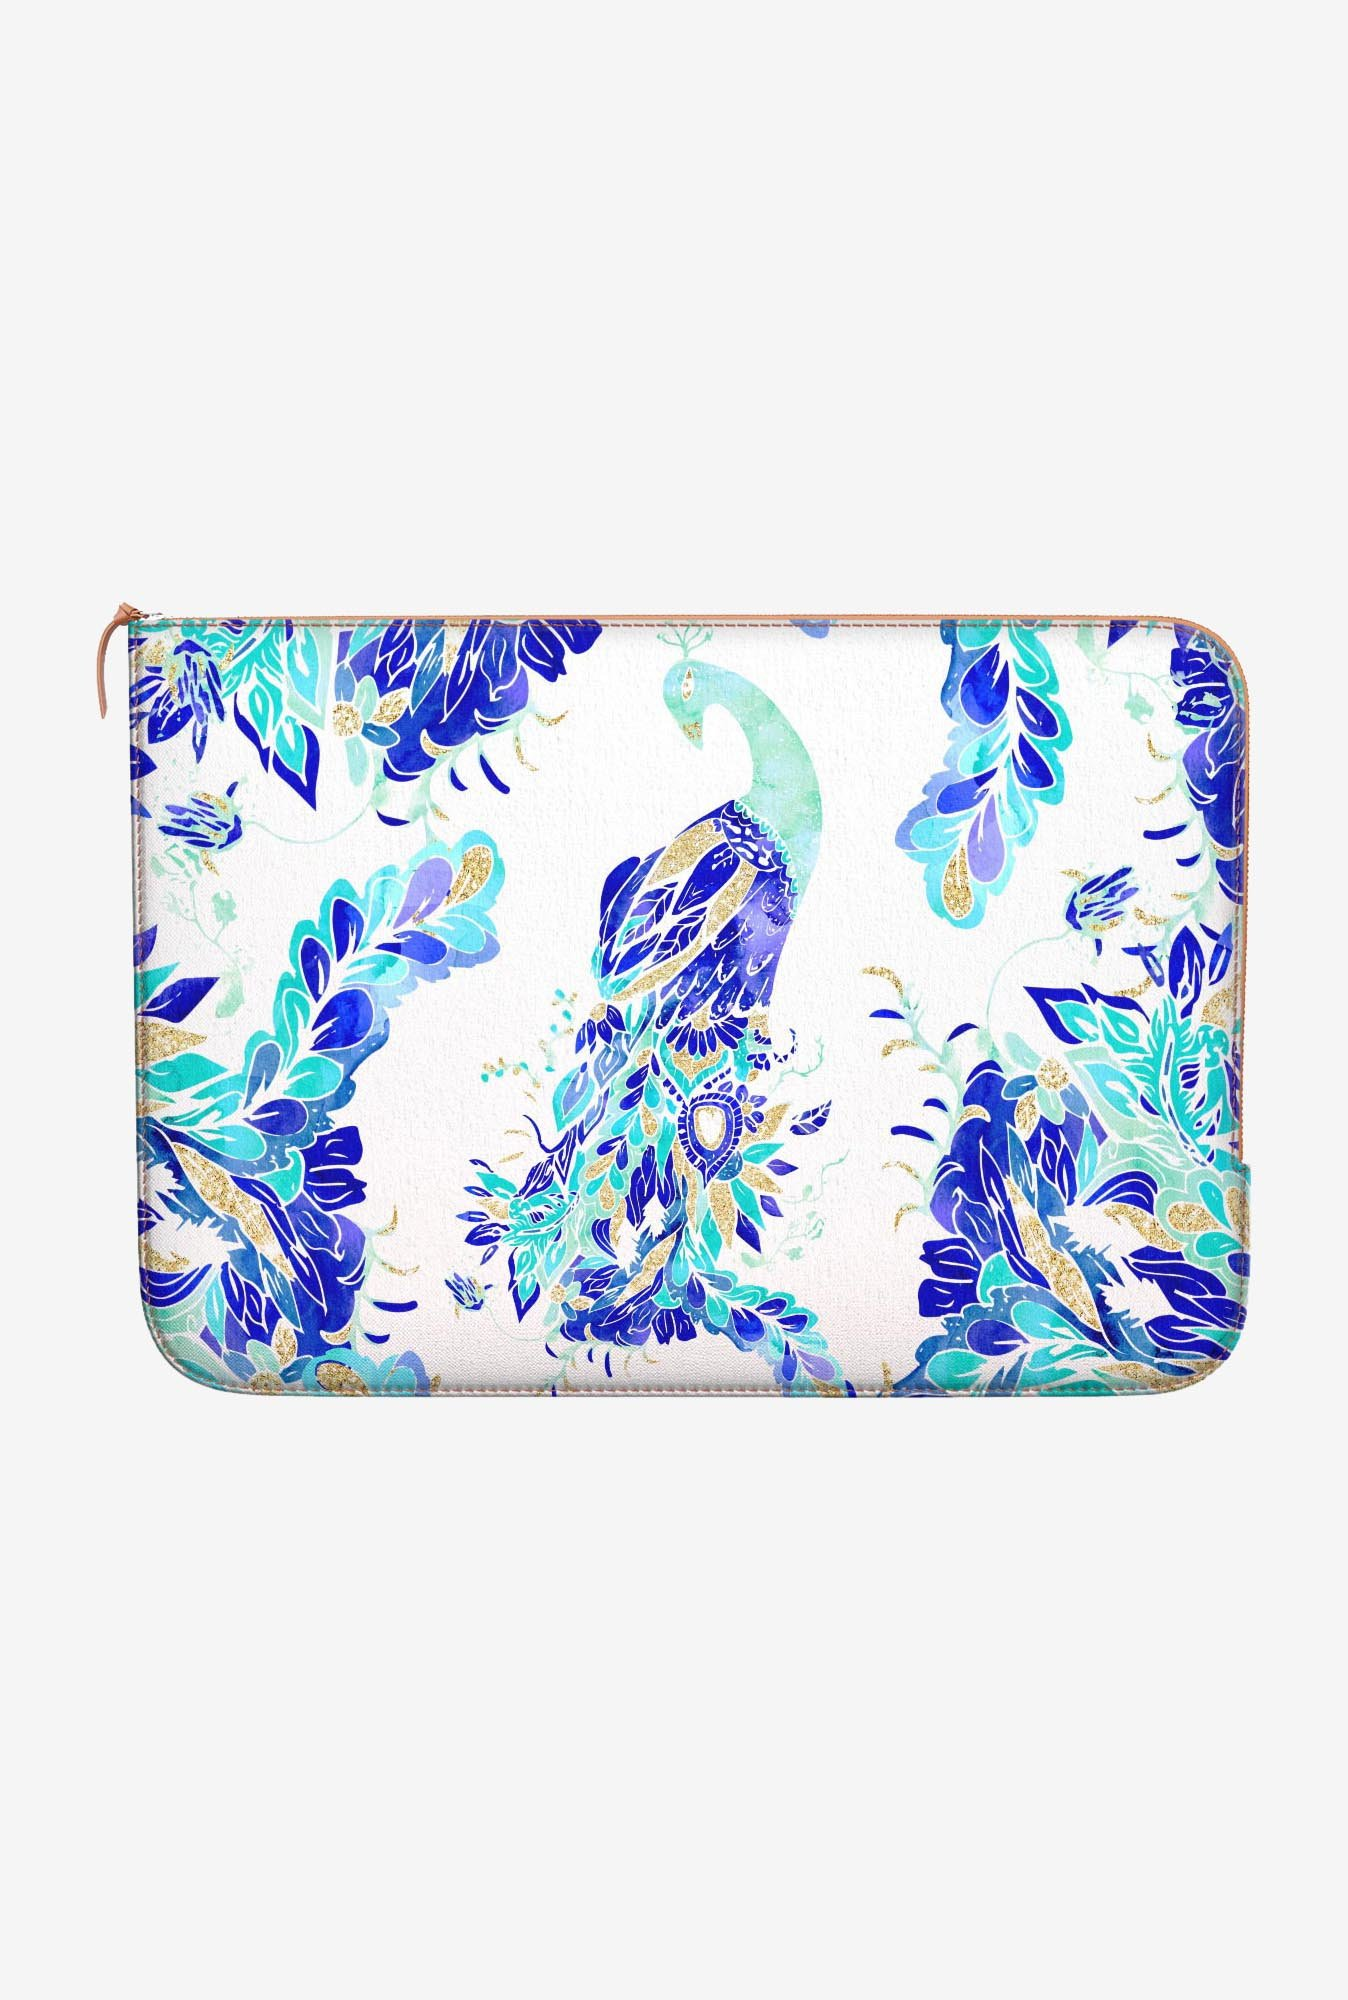 DailyObjects Blue Peacock MacBook Pro 13 Zippered Sleeve